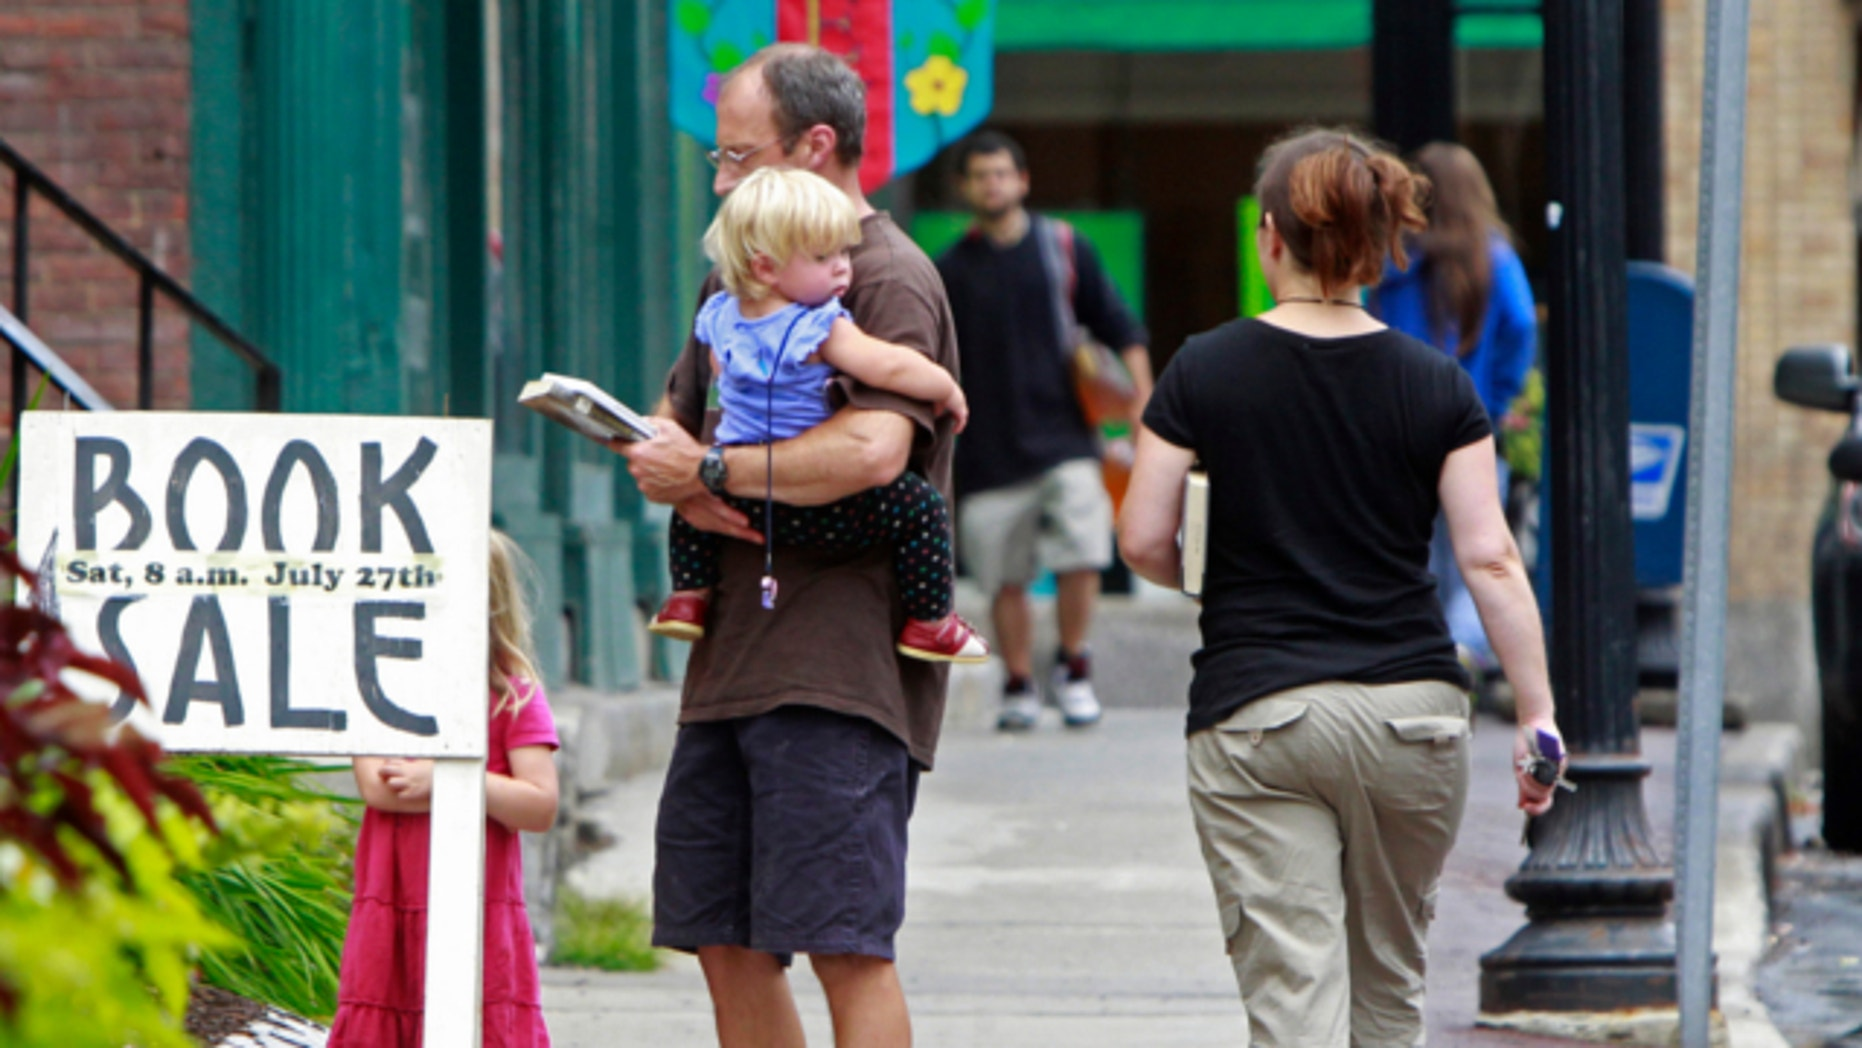 July 23, 2013: People walk down the street in downtown Springfield, Vt. where Timothy J. Szad, a high-risk sex offender, is due to be released on Friday.